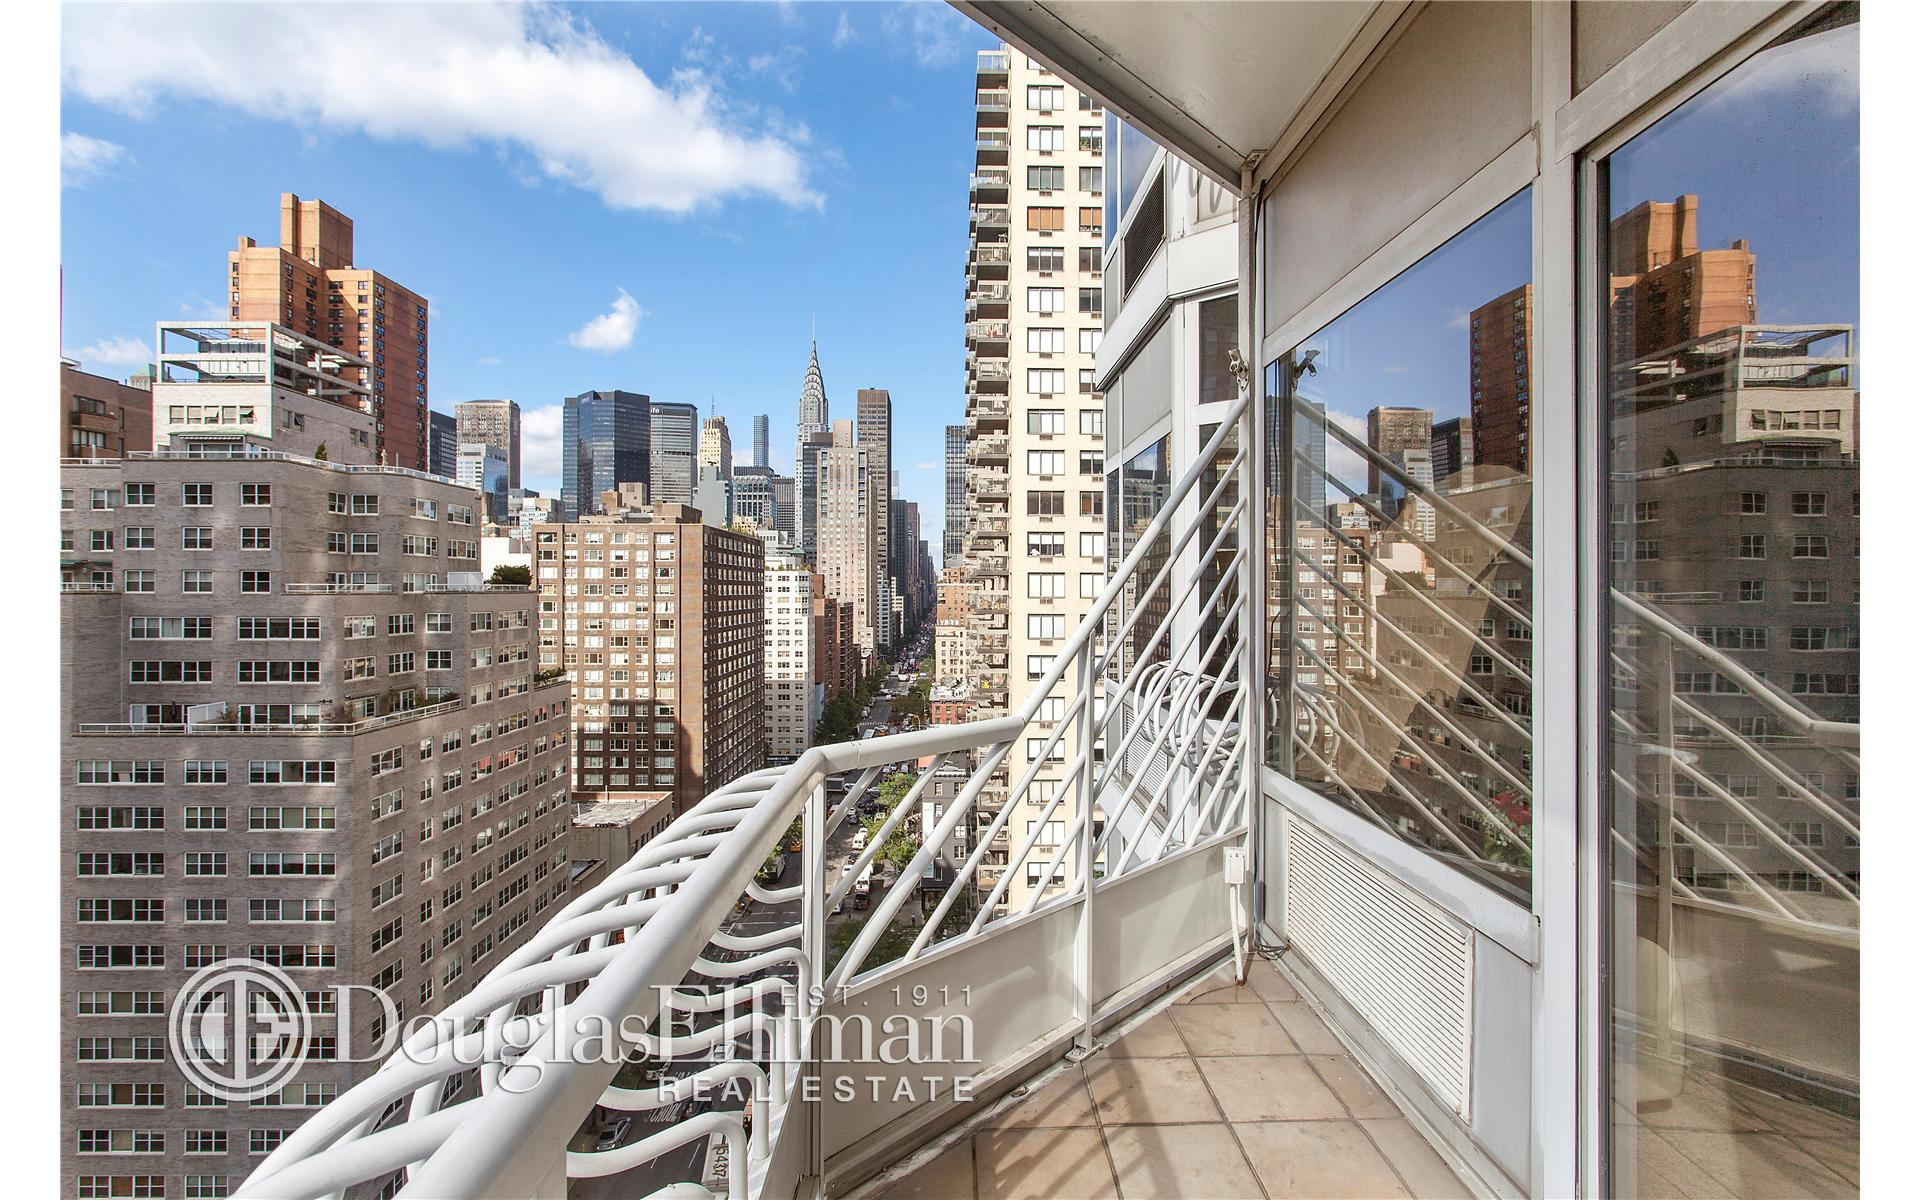 Condominium for Sale at THE FUTURE, The Future, 200 East 32nd Street New York, New York 10016 United States